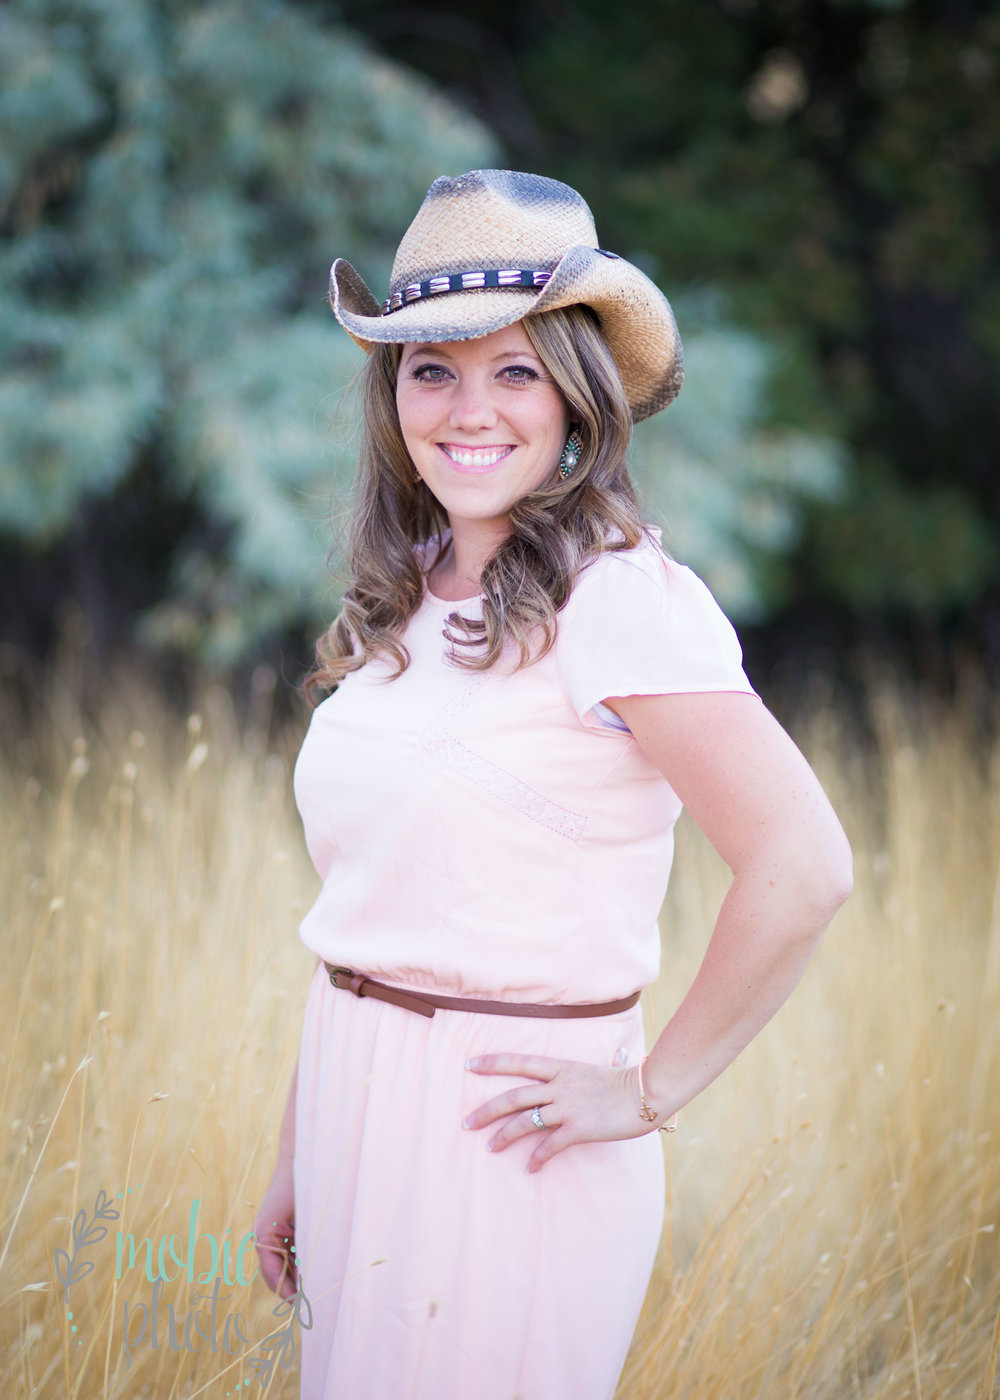 Cowgirl pictures in a field